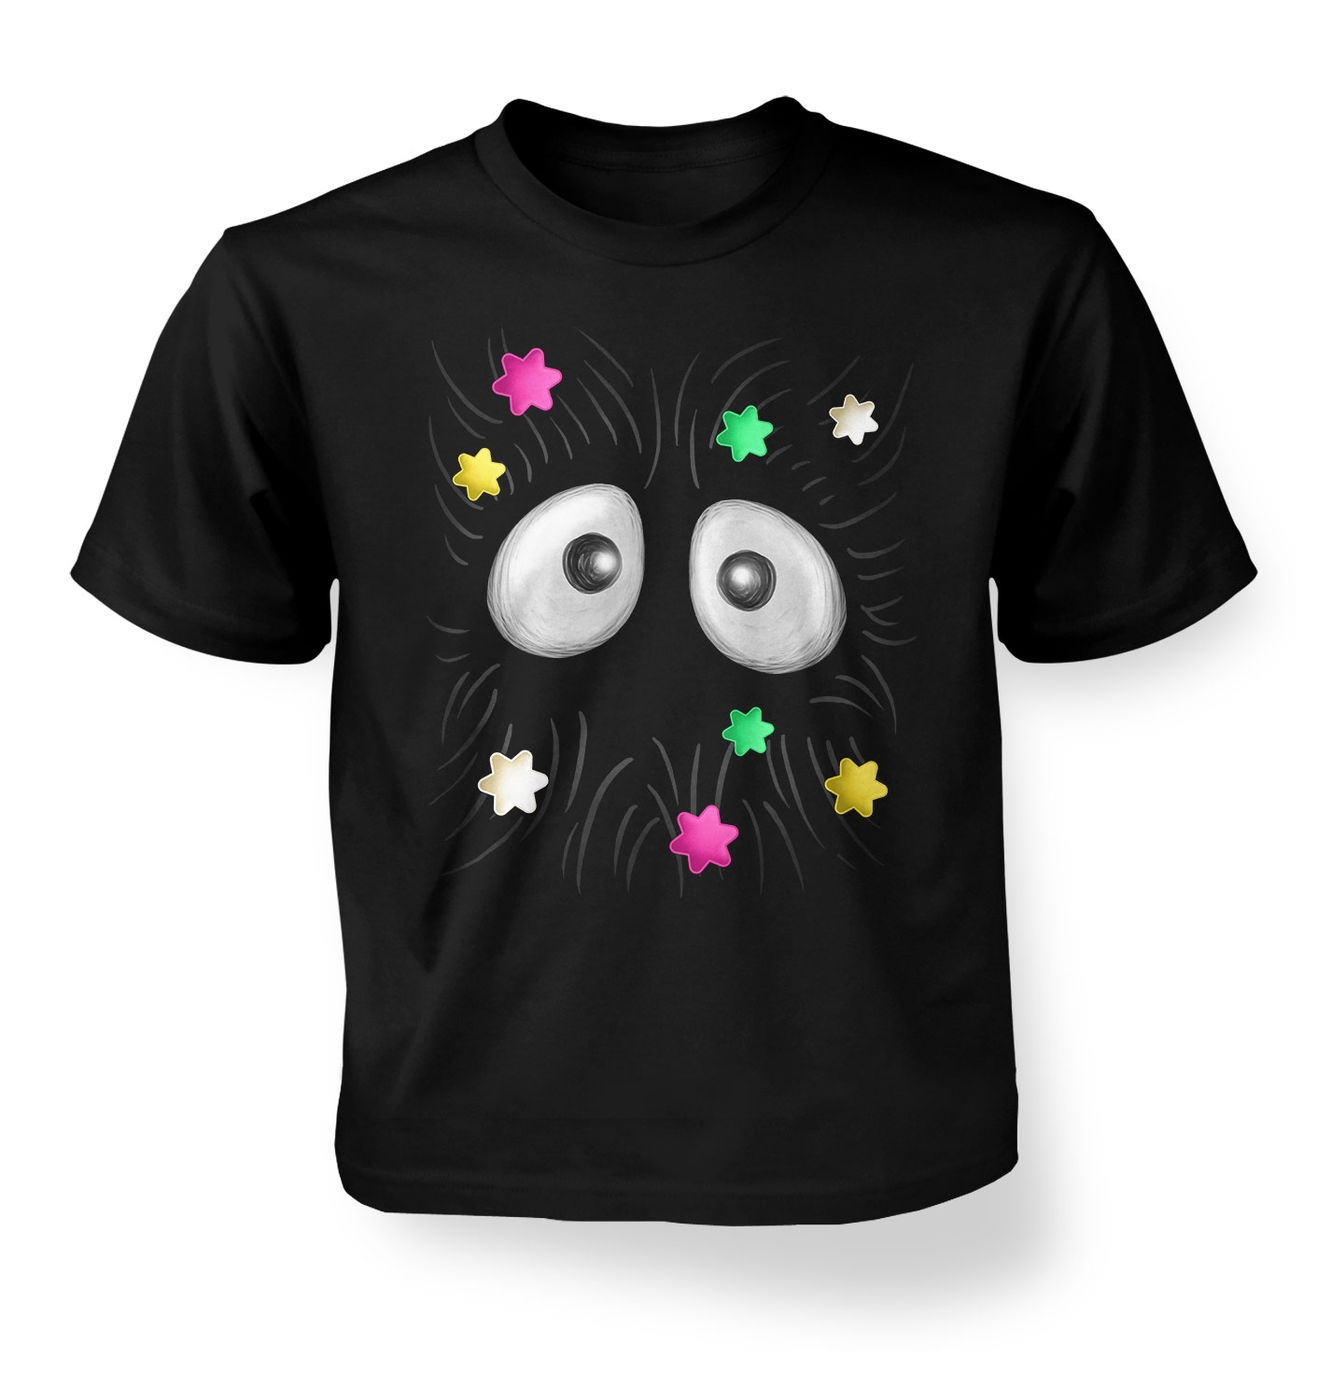 Soot Sprite kids t-shirt by Something Geeky